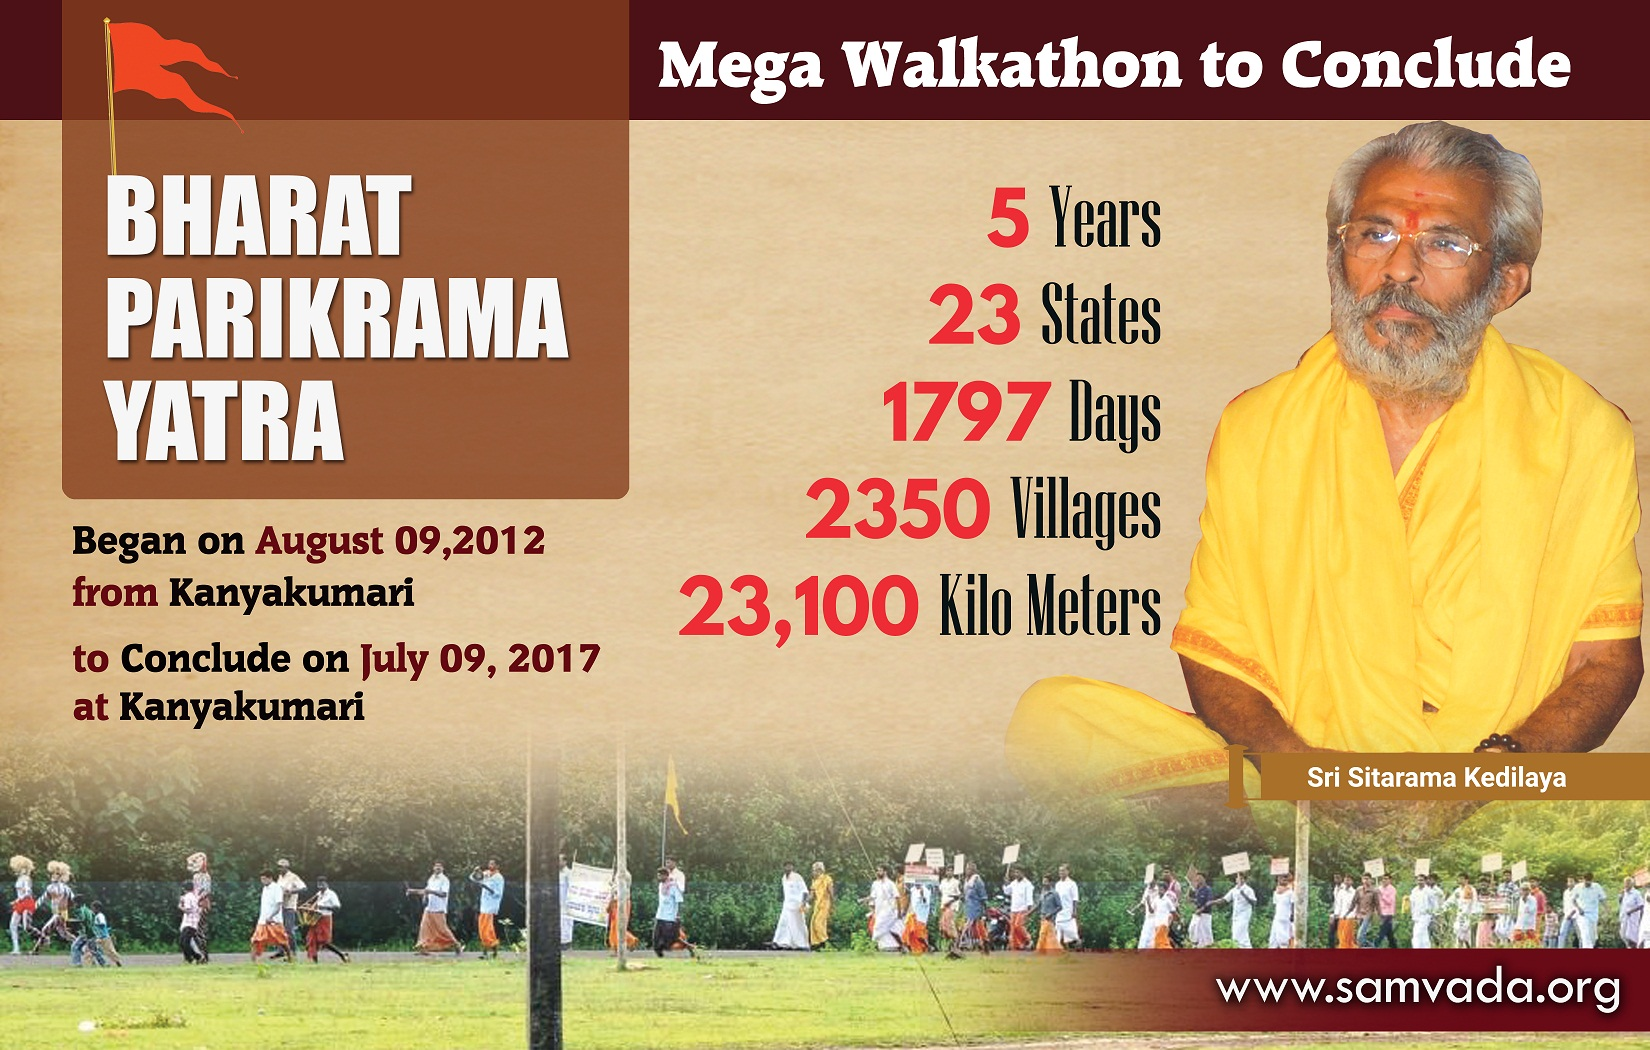 5 Years-23,100KM of Walkathon; BHARAT PARIKRAMA YATRA to conclude on July 9 at Kanyakumari; RSS Sarasanghachalak to attend Valedictory